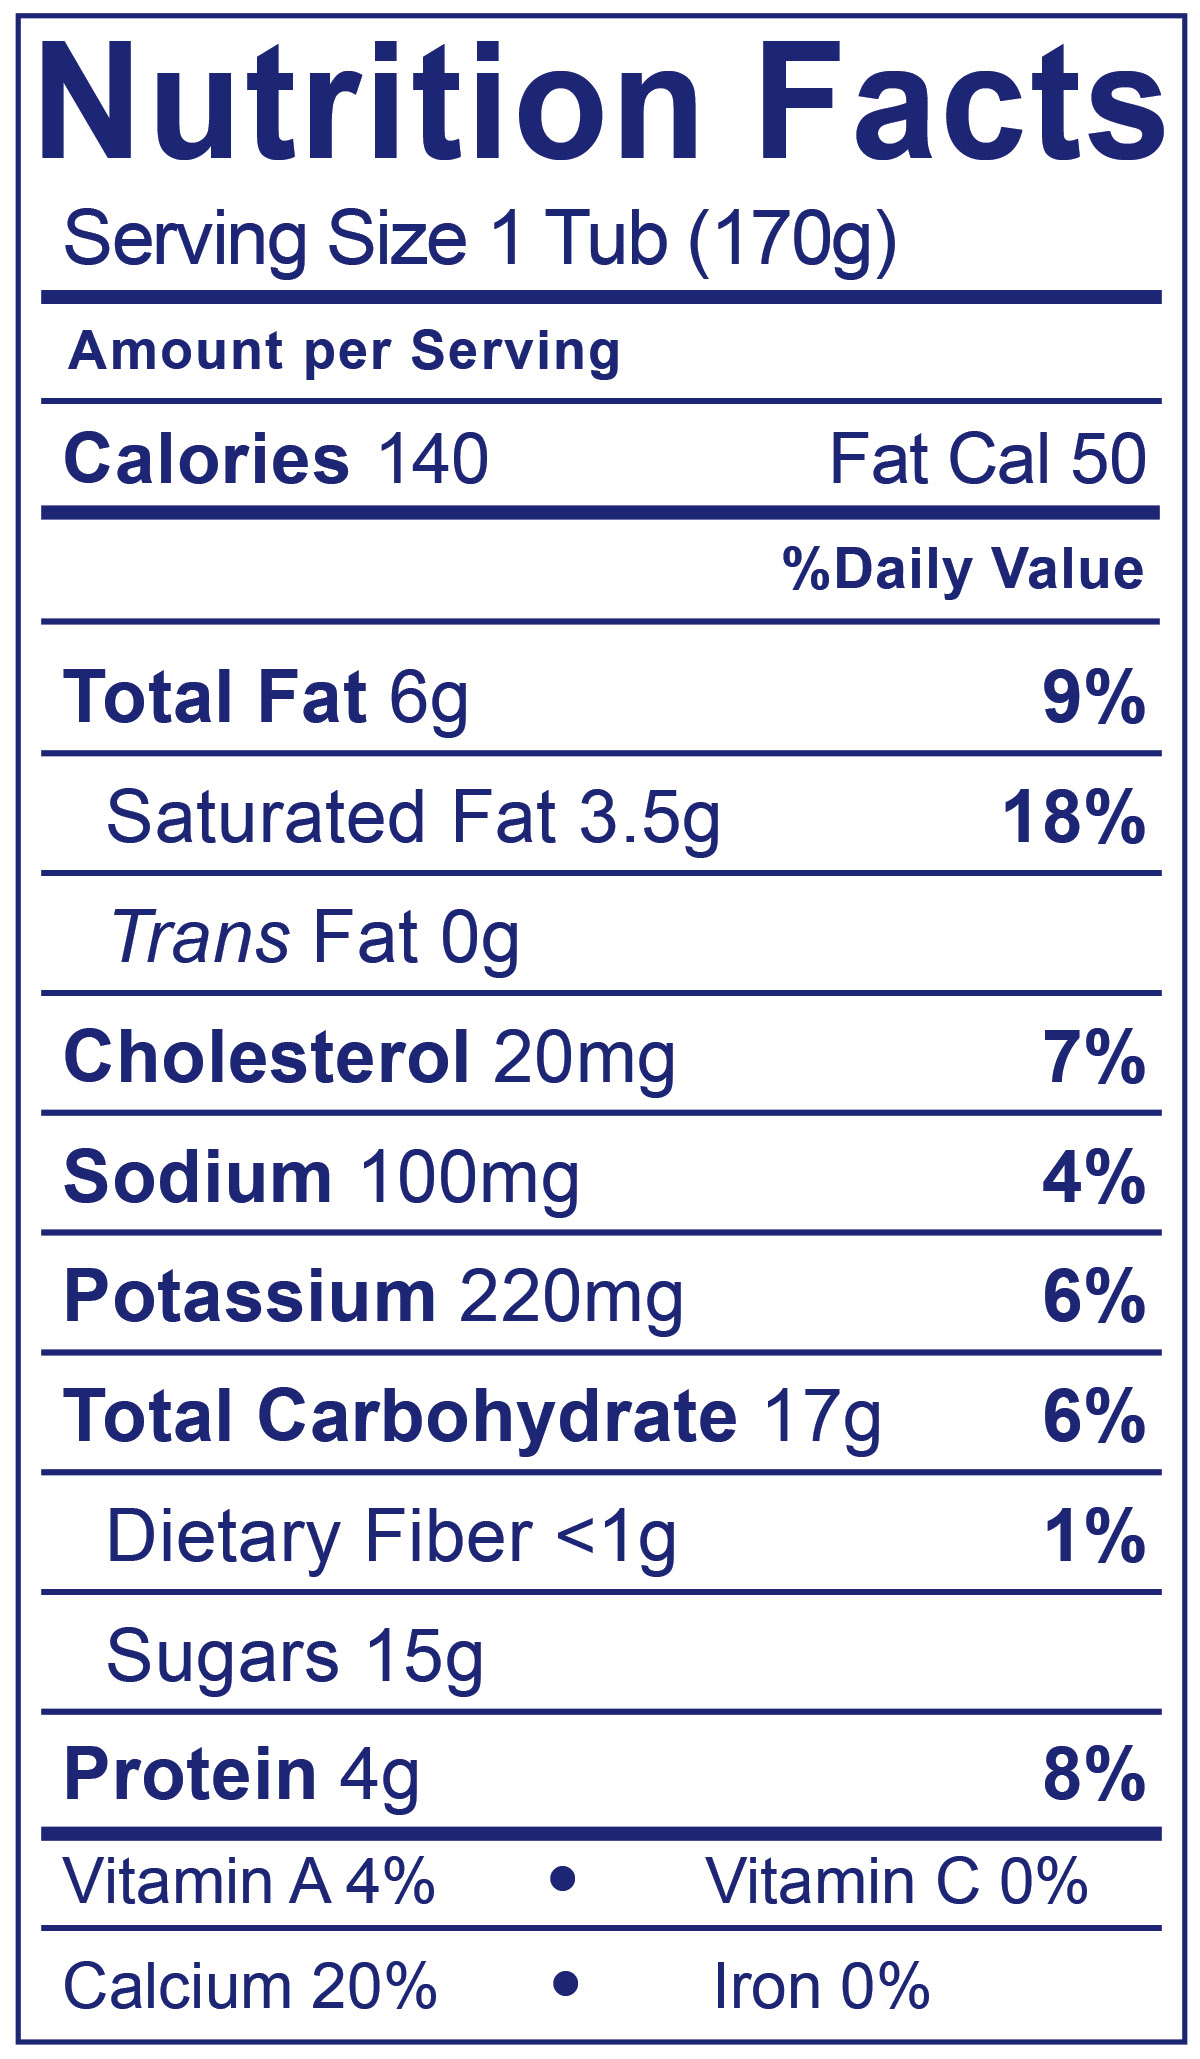 100% Grassfed Strawberry - Nutrition Facts